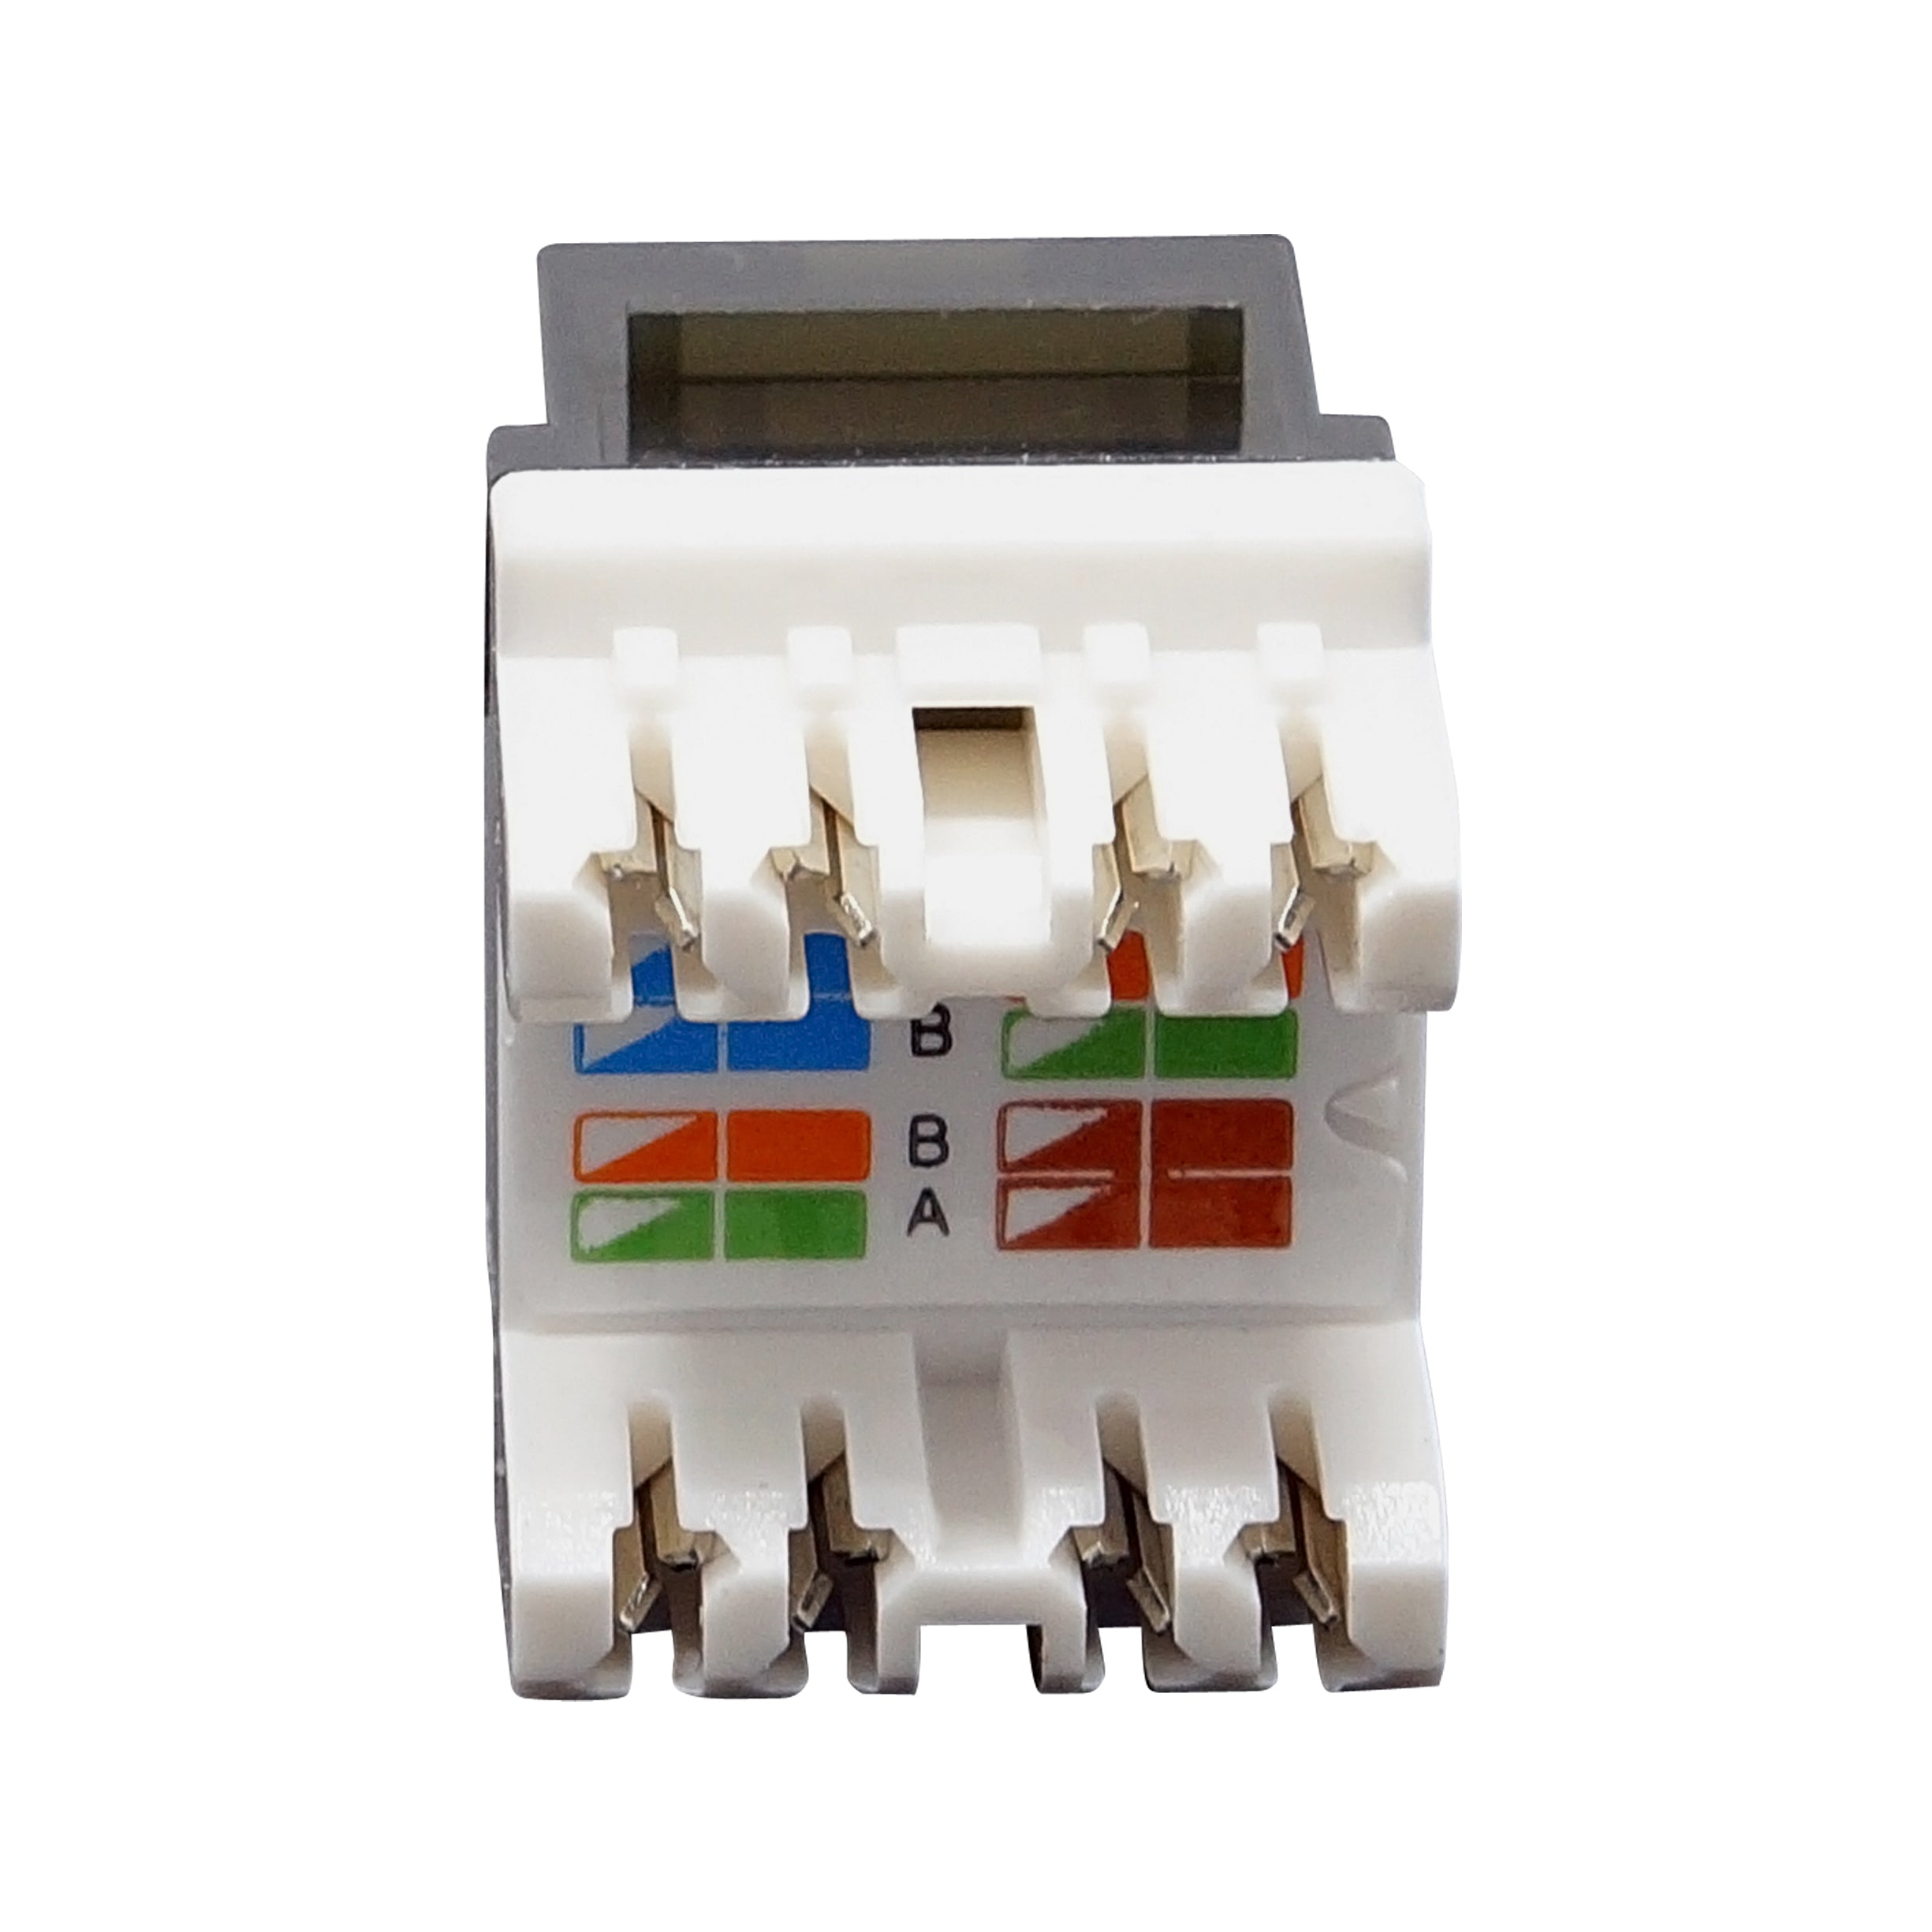 UTP Cat.6A/Cat.6/Cat.5e Gold Plated Keystone Modular Jack with LED